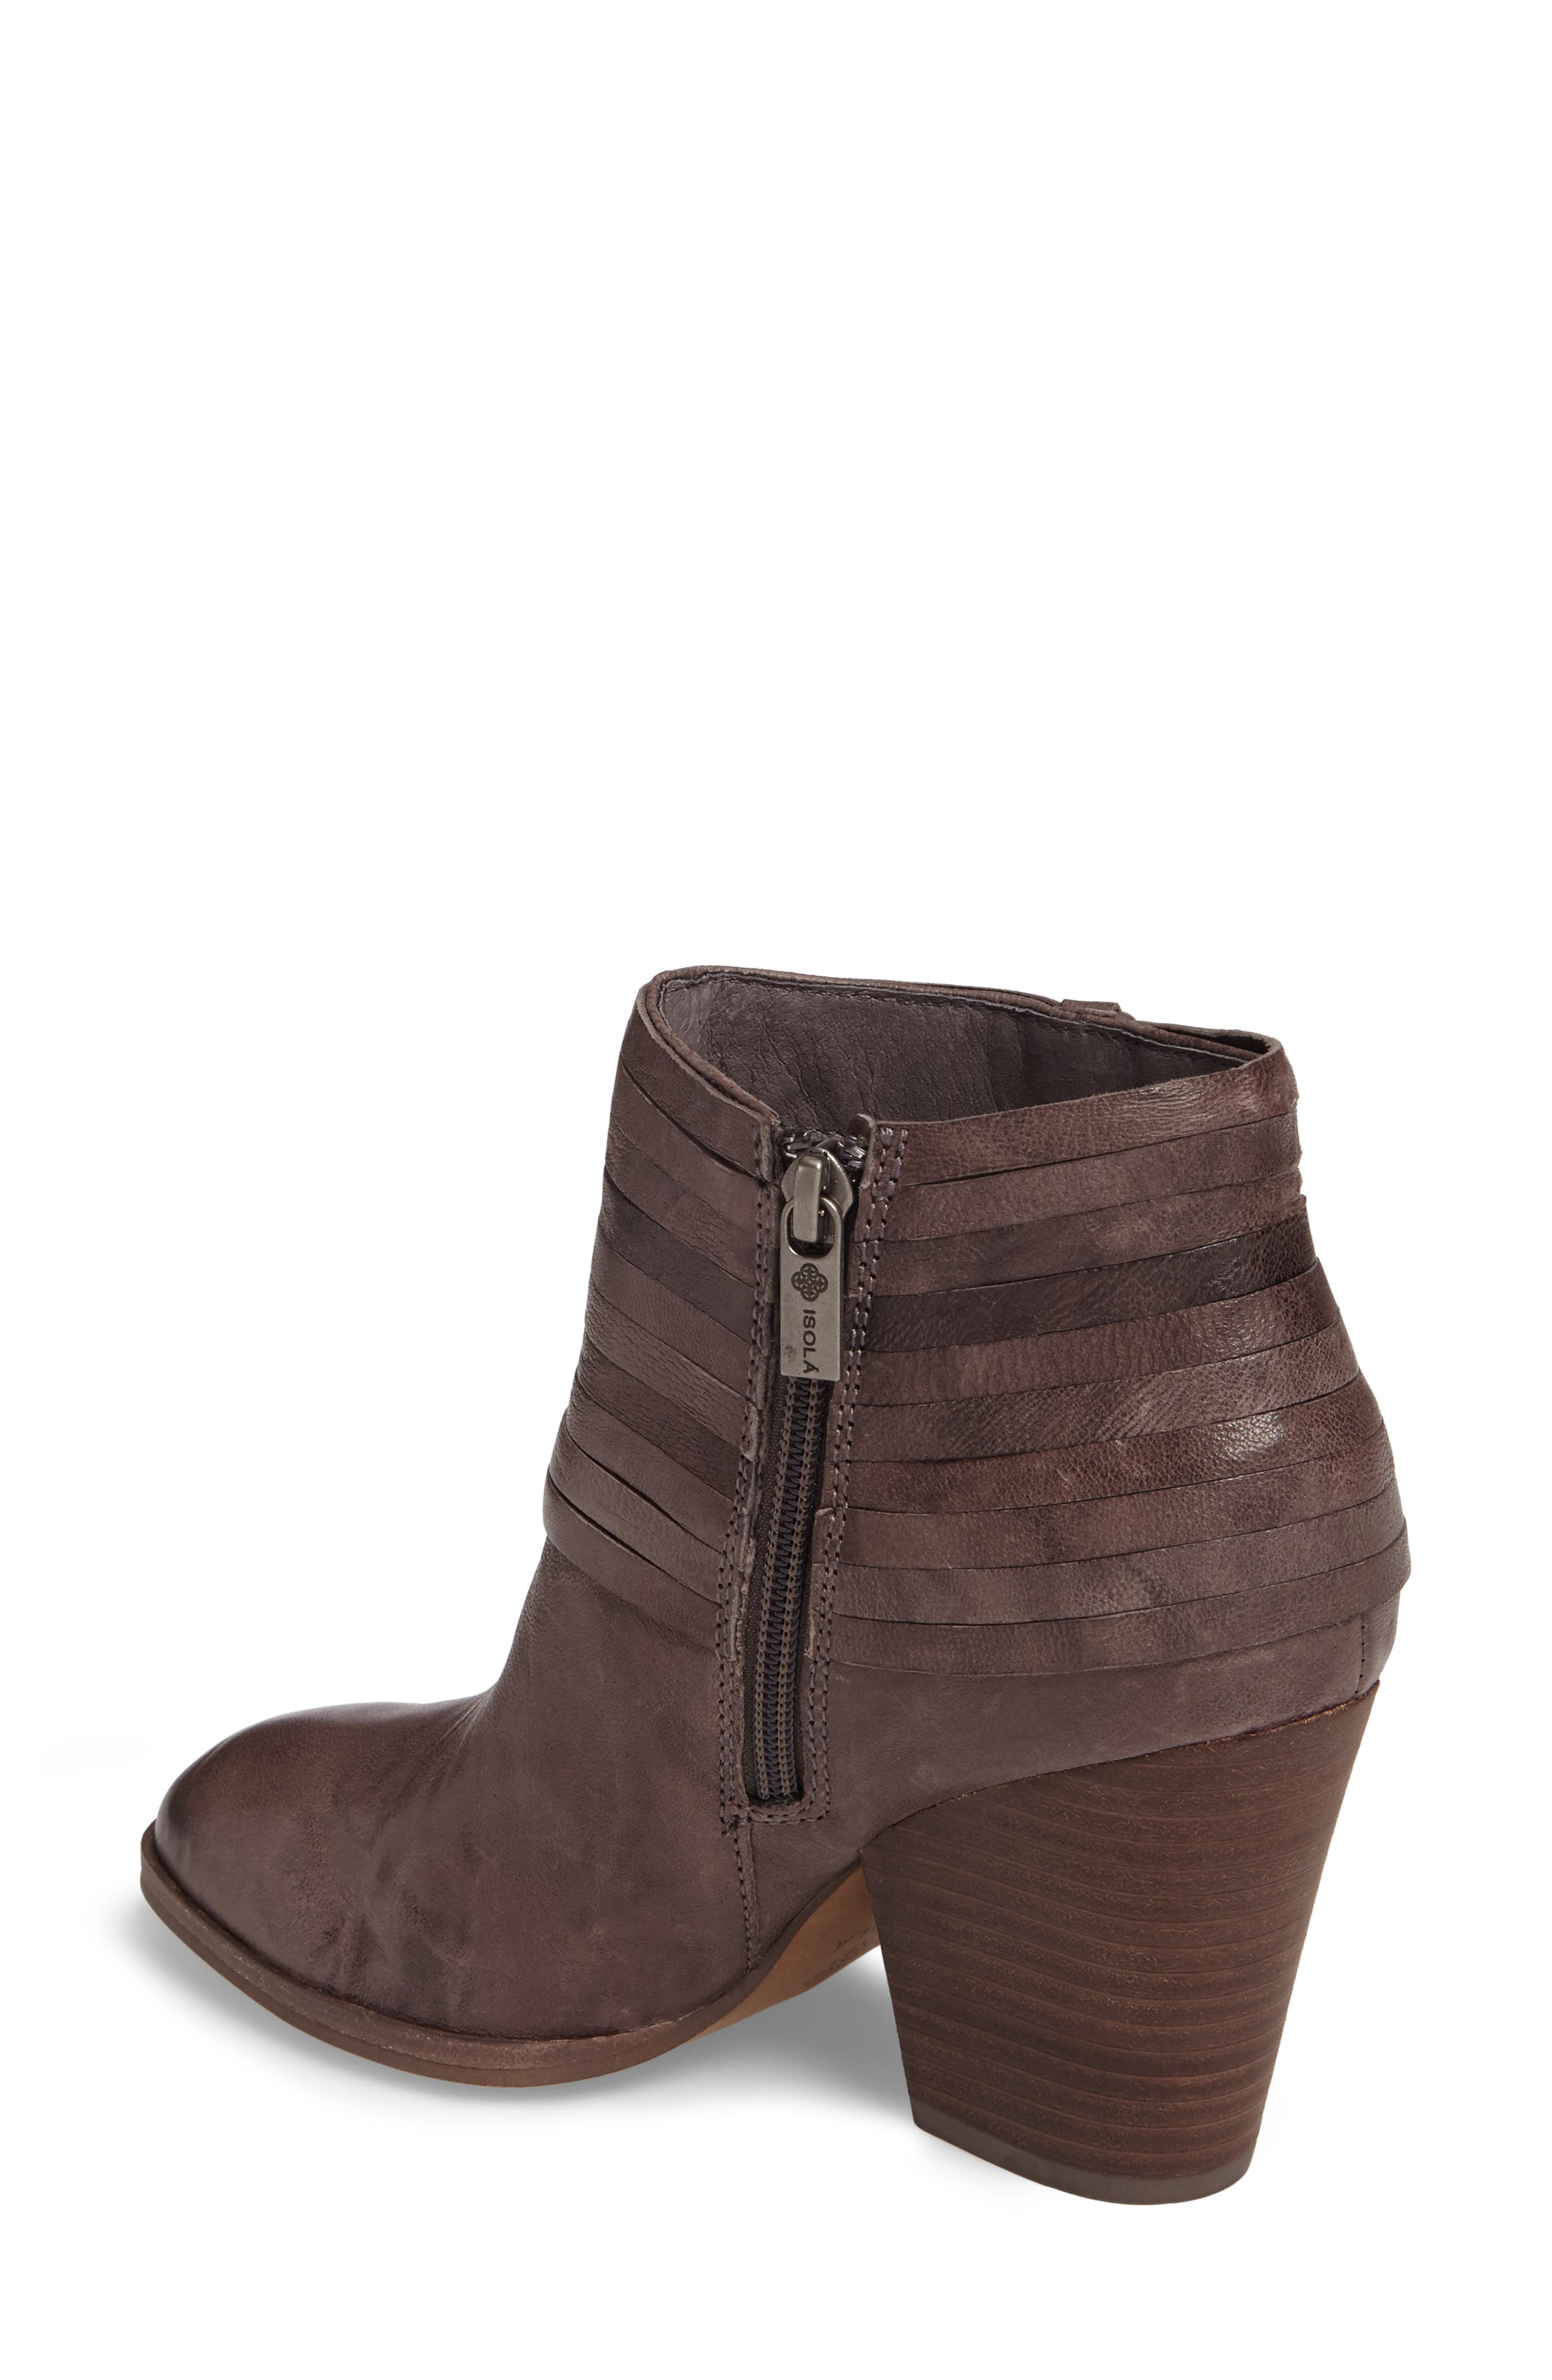 Lander Strappy Bootie,                             Alternate thumbnail 2, color,                             Cemento Grey Leather